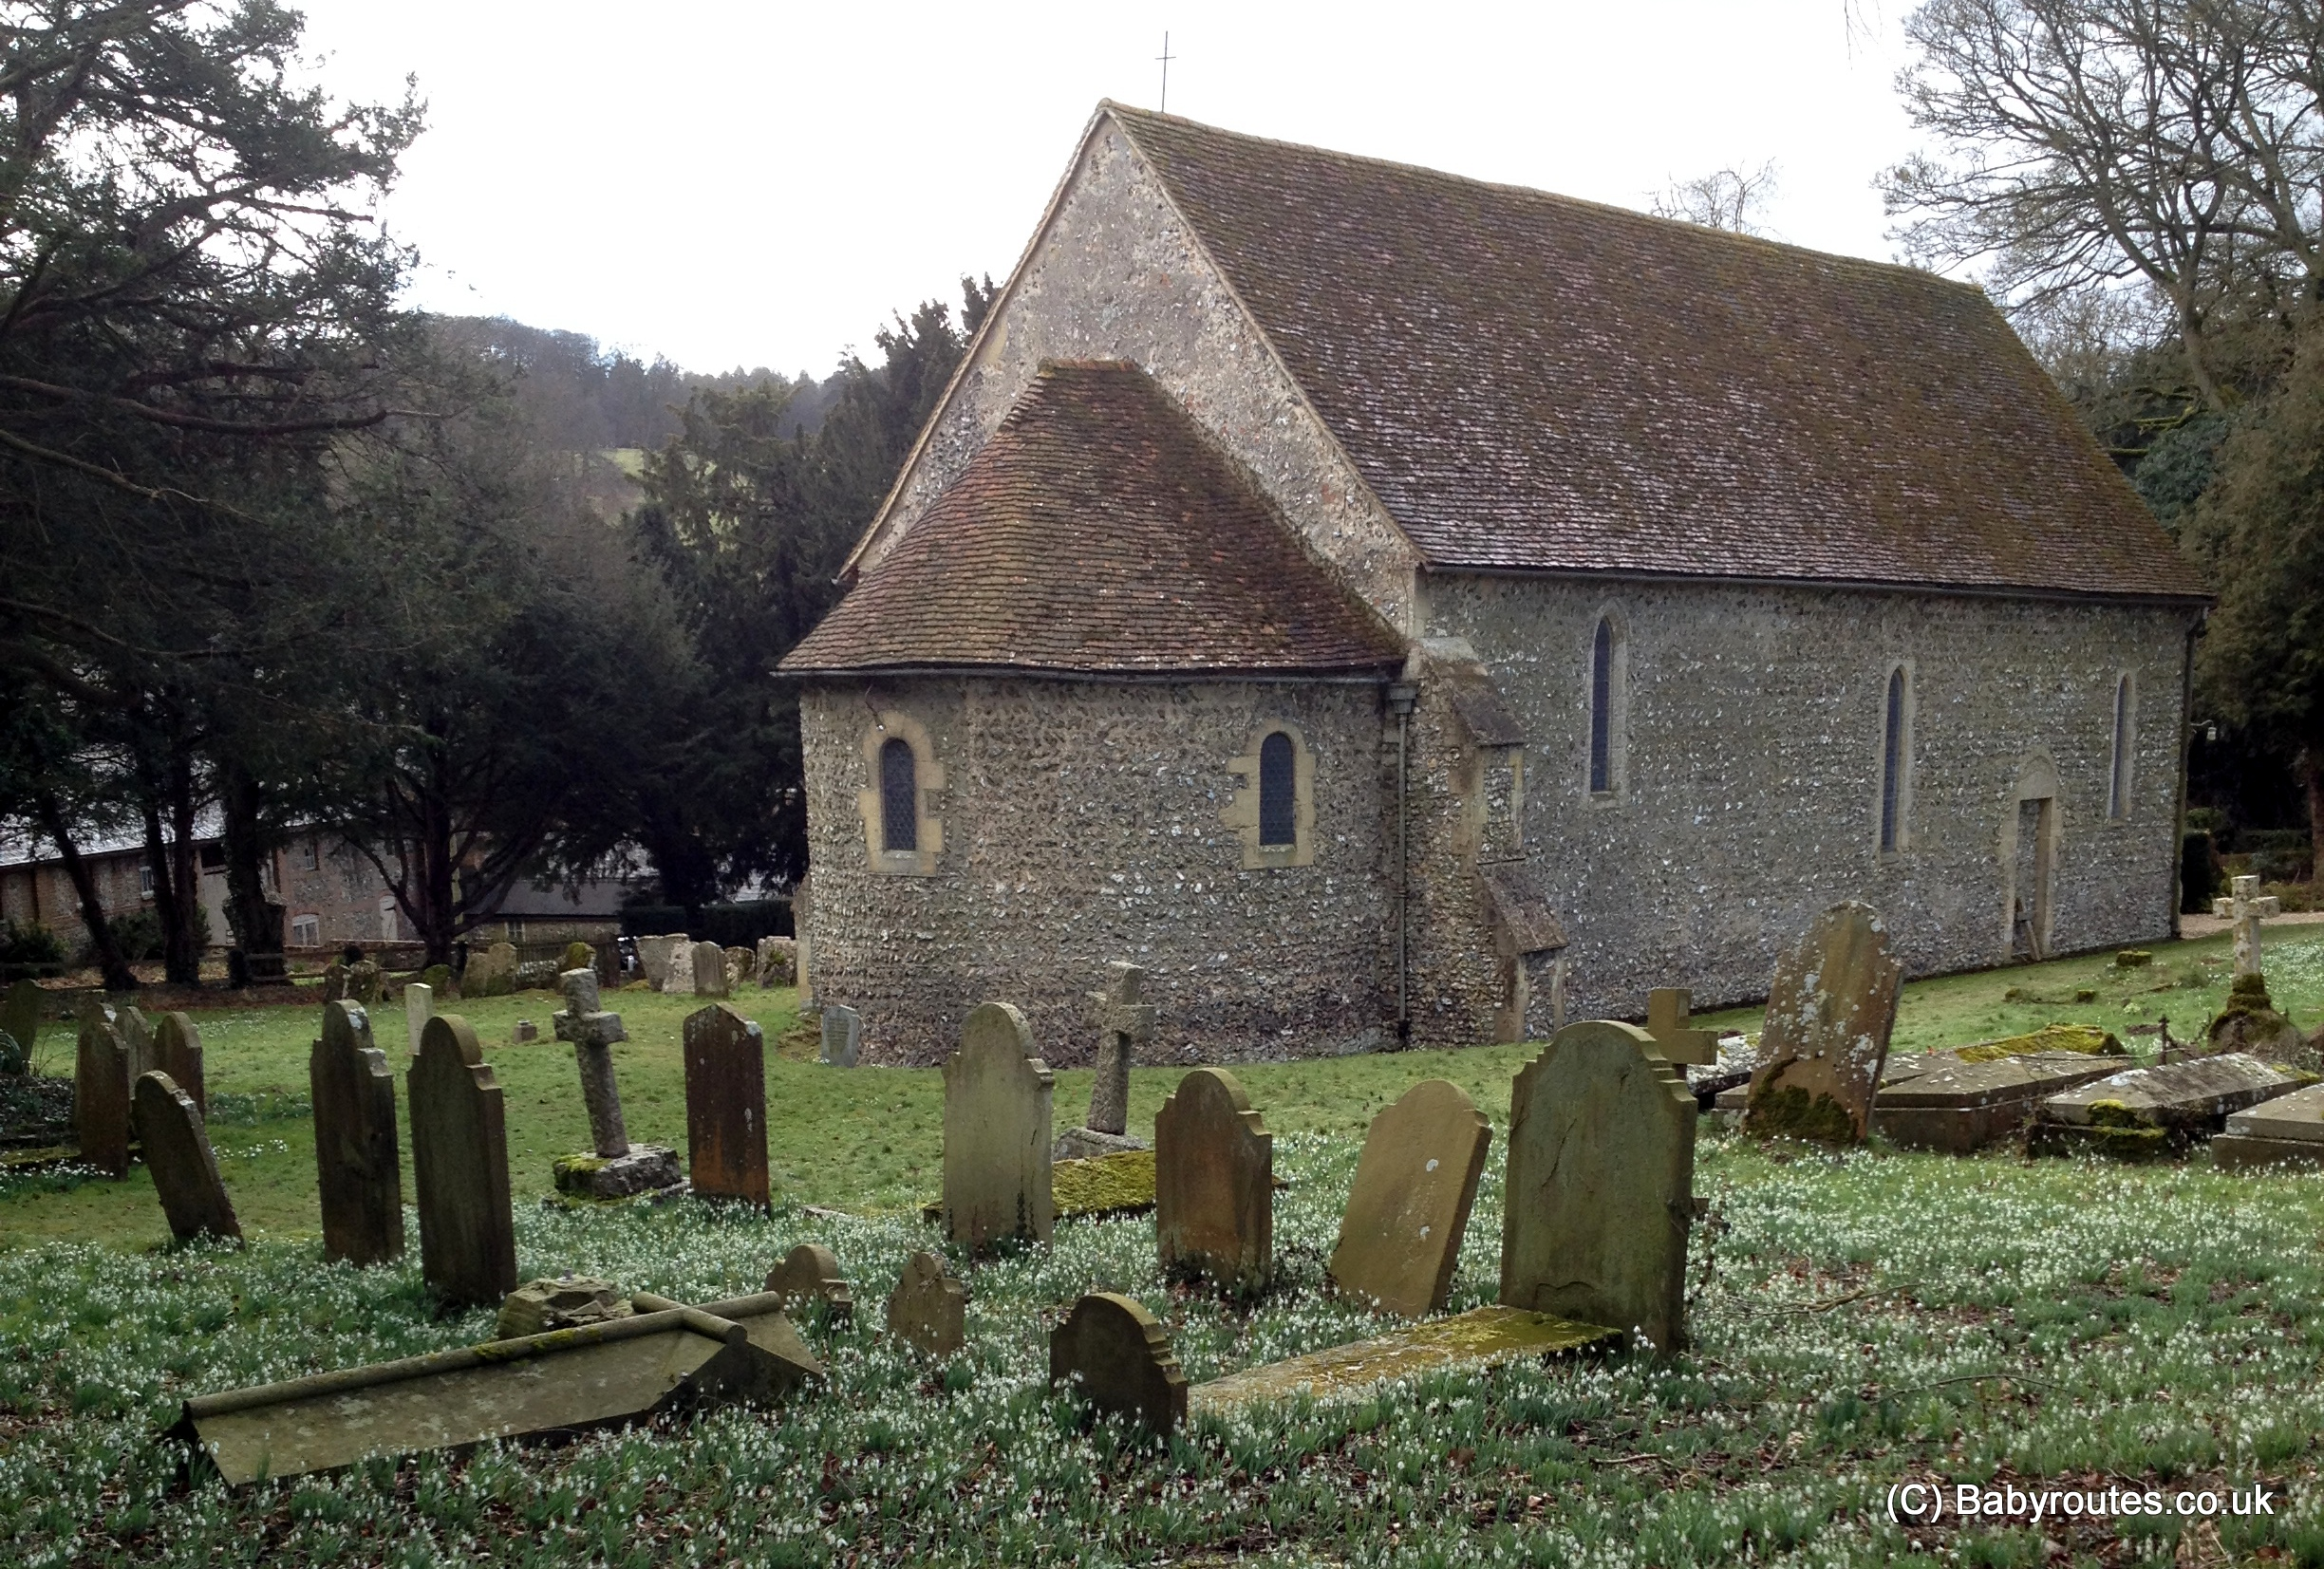 St. Botolph's Church, Swyncombe Snowdrop Walk, Baby Routes